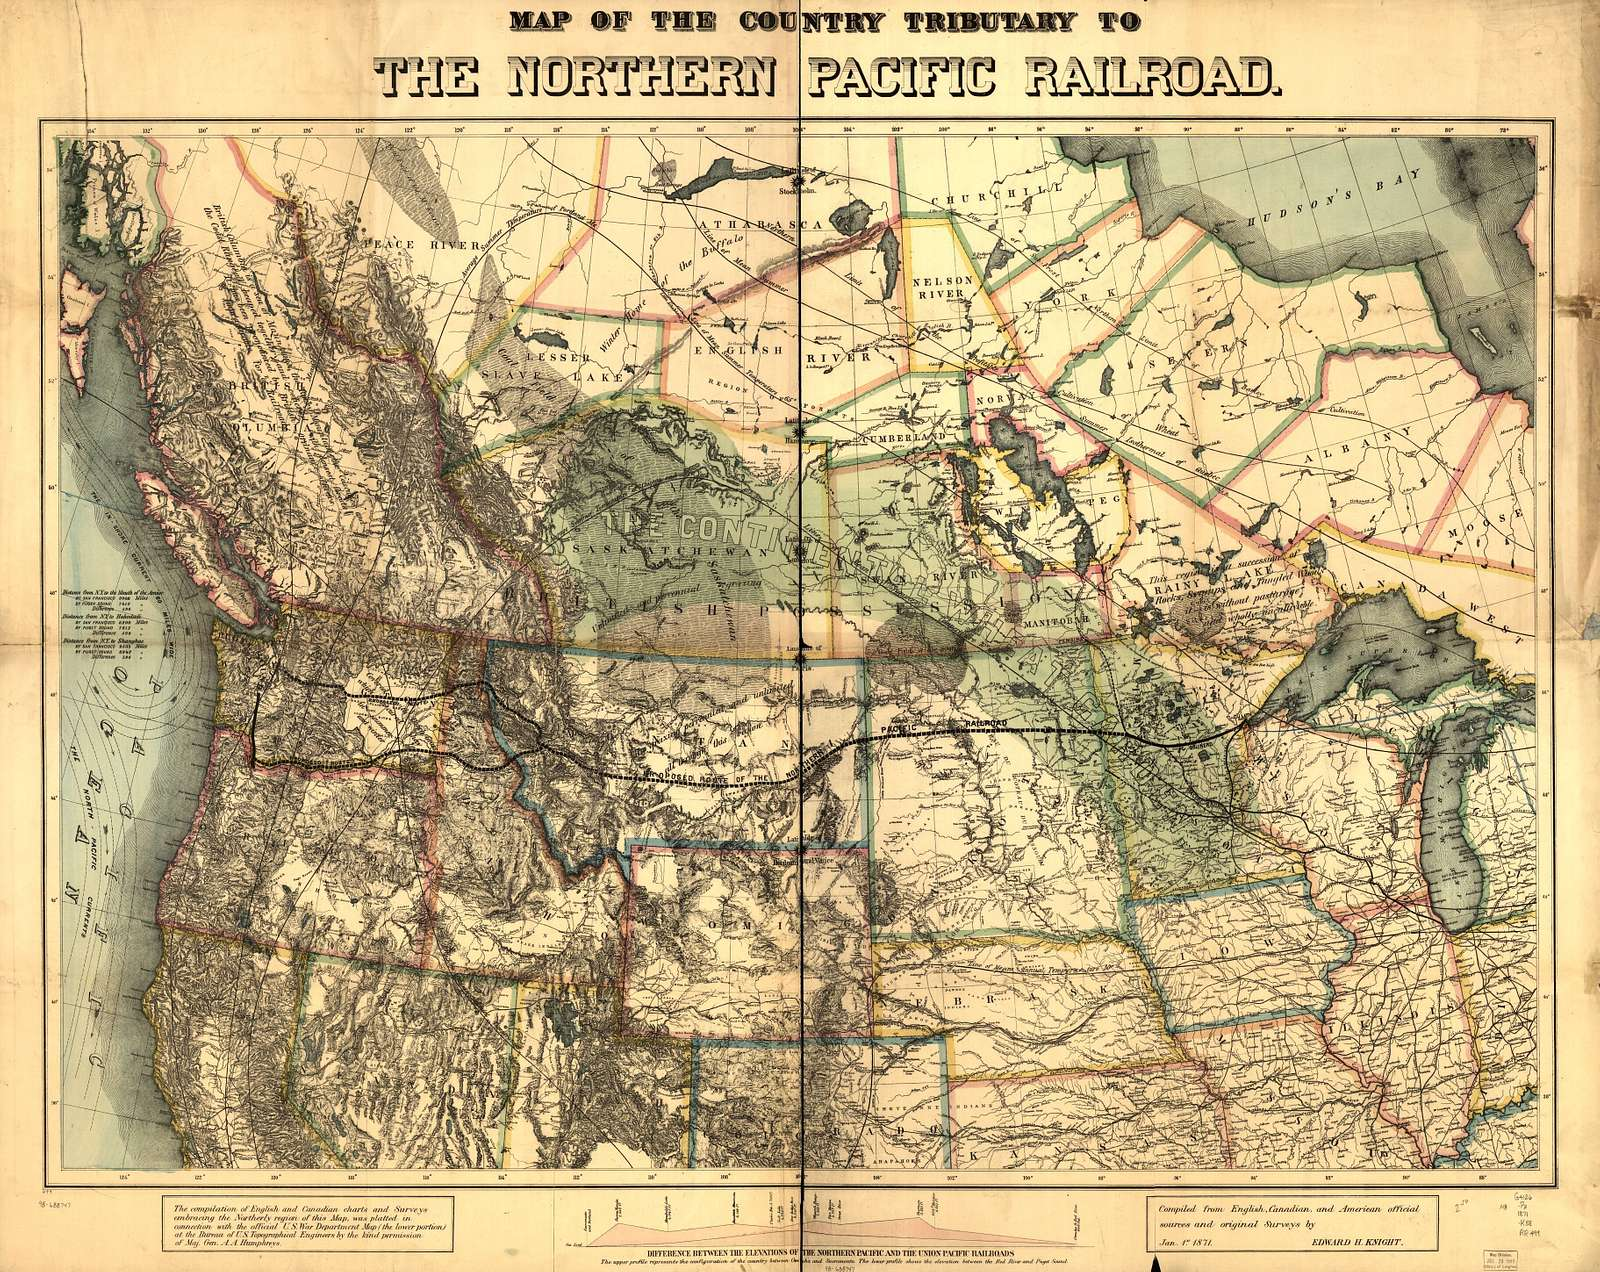 Map of the country tributary to the Northern Pacific Railroad, compiled from English, Canadian, and American official sources and original surveys by Edward H. Knight, Jan. 1st 1871.